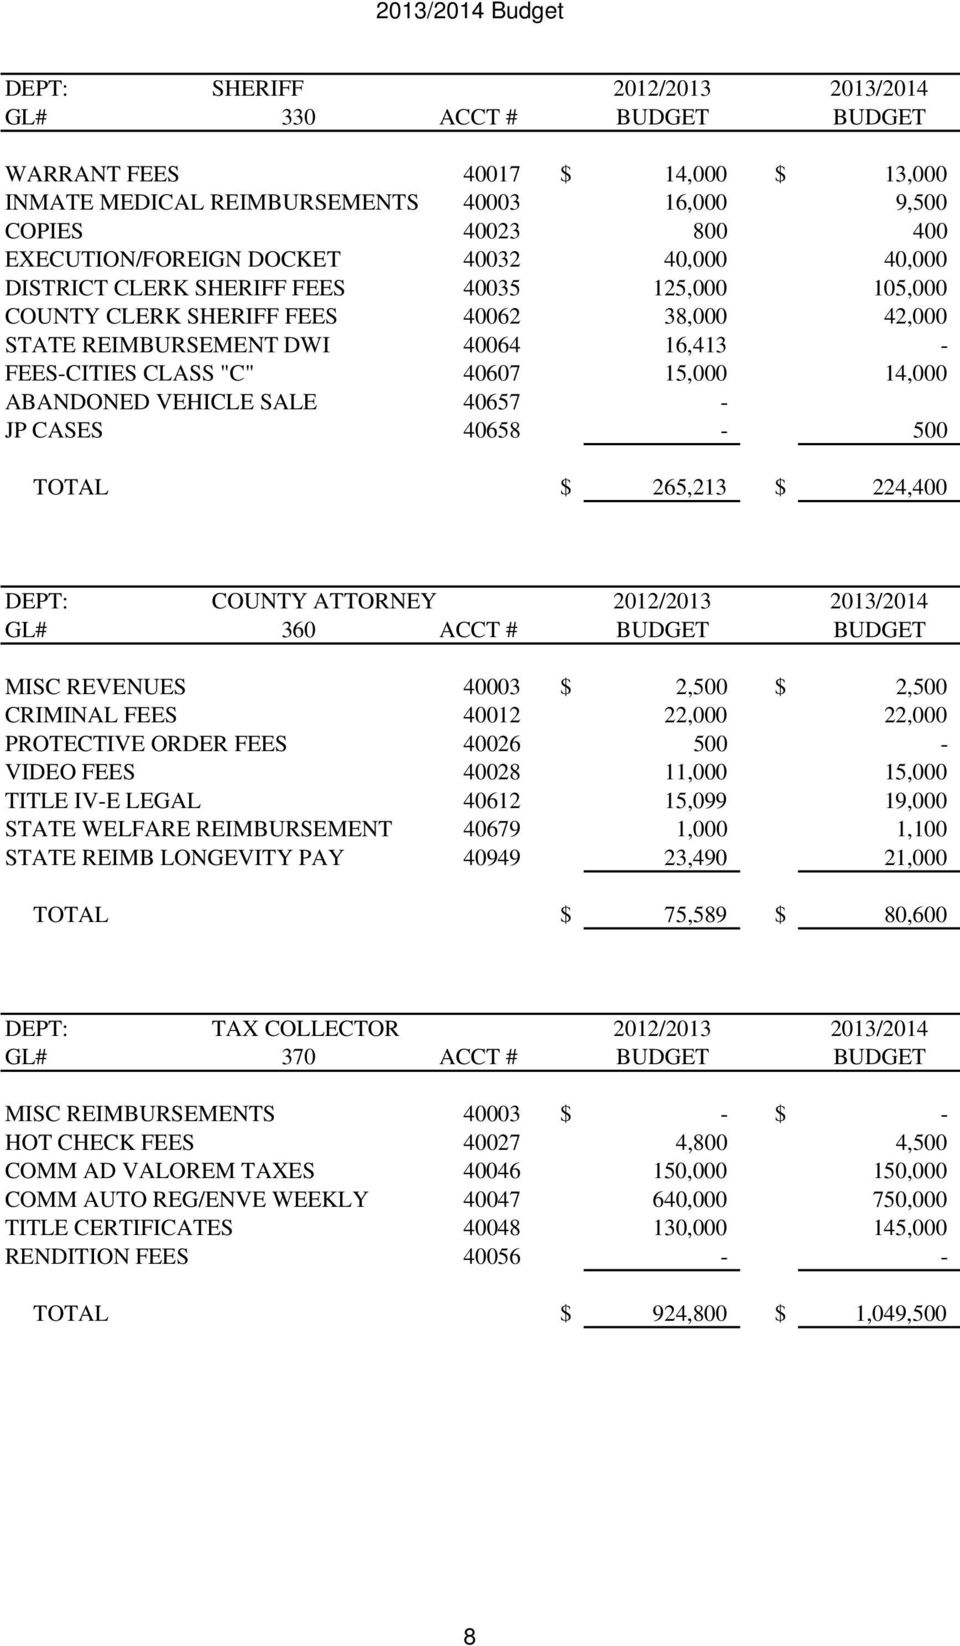 ABANDONED VEHICLE SALE 40657 - JP CASES 40658-500 TOTAL $ 265,213 $ 224,400 DEPT: COUNTY ATTORNEY 2012/2013 2013/2014 GL# 360 ACCT # BUDGET BUDGET MISC REVENUES 40003 $ 2,500 $ 2,500 CRIMINAL FEES